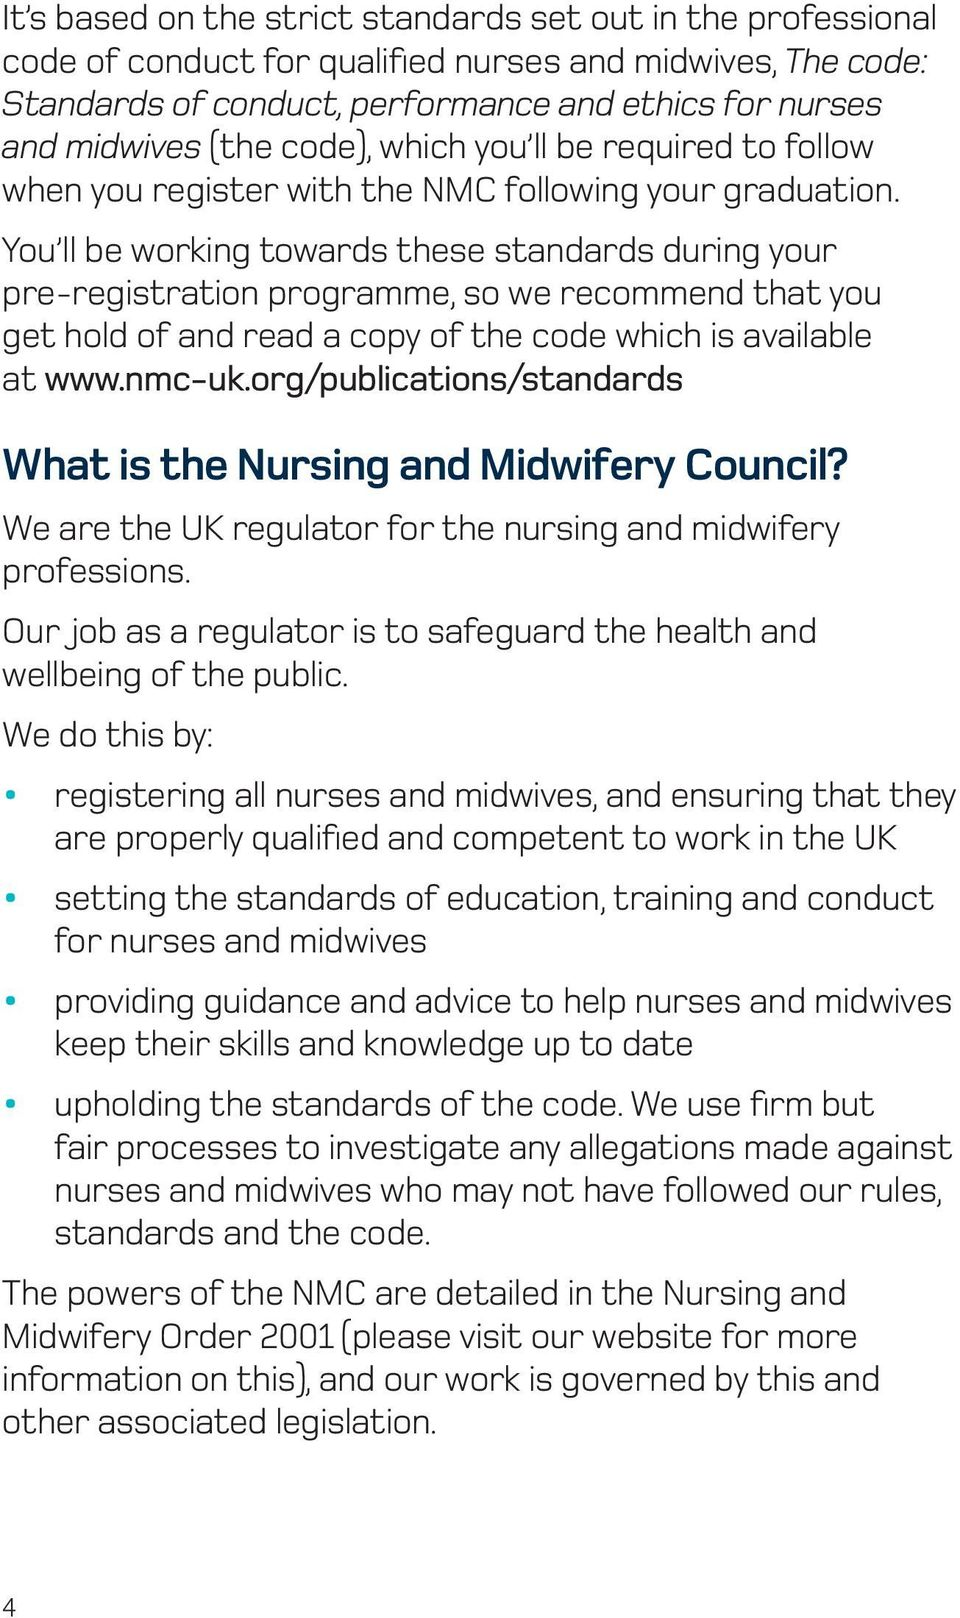 You ll be working towards these standards during your pre-registration programme, so we recommend that you get hold of and read a copy of the code which is available at www.nmc-uk.